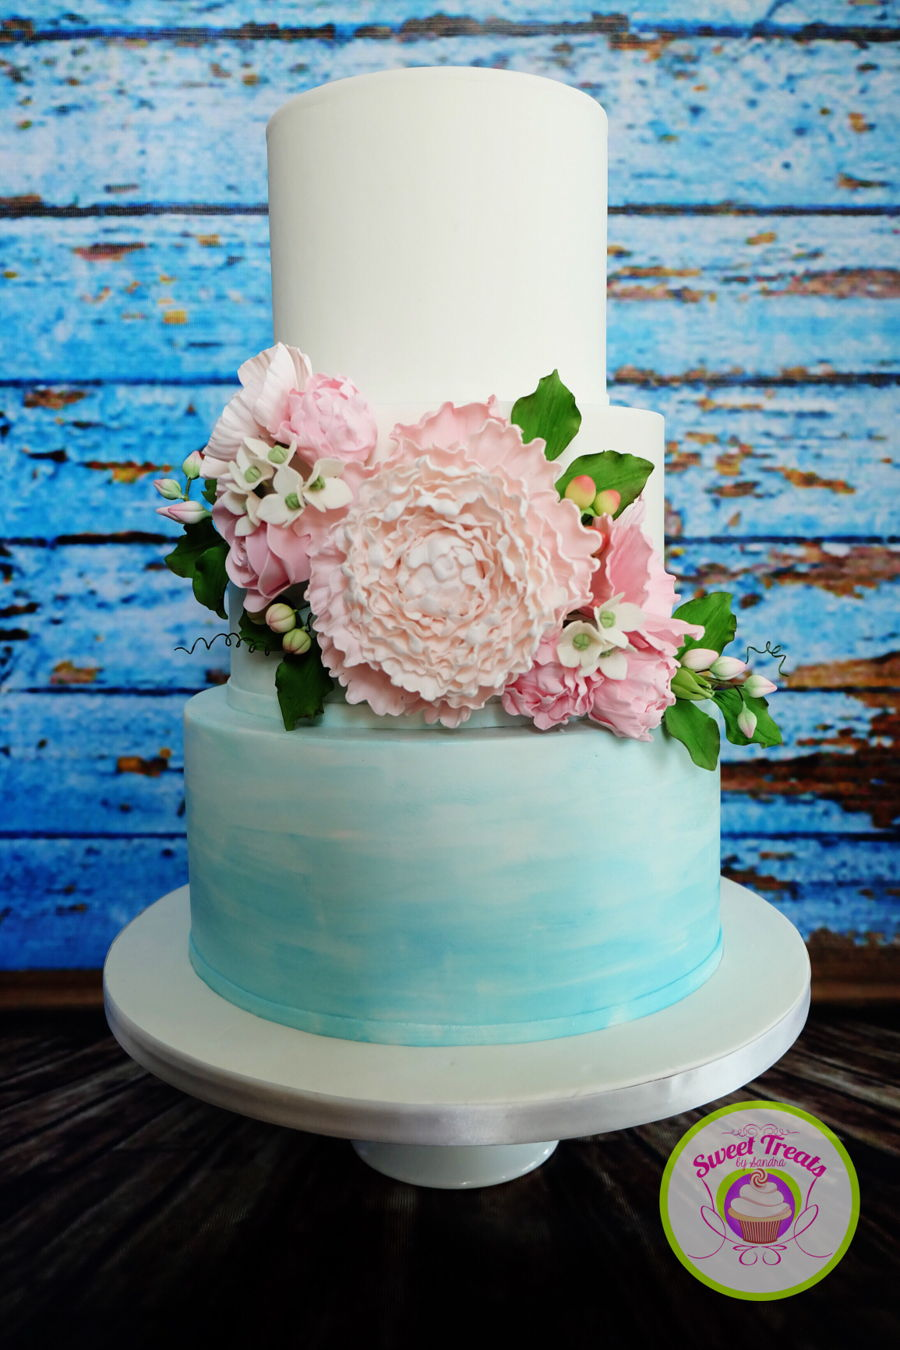 Decorating A Birthday Cake With Buttercream